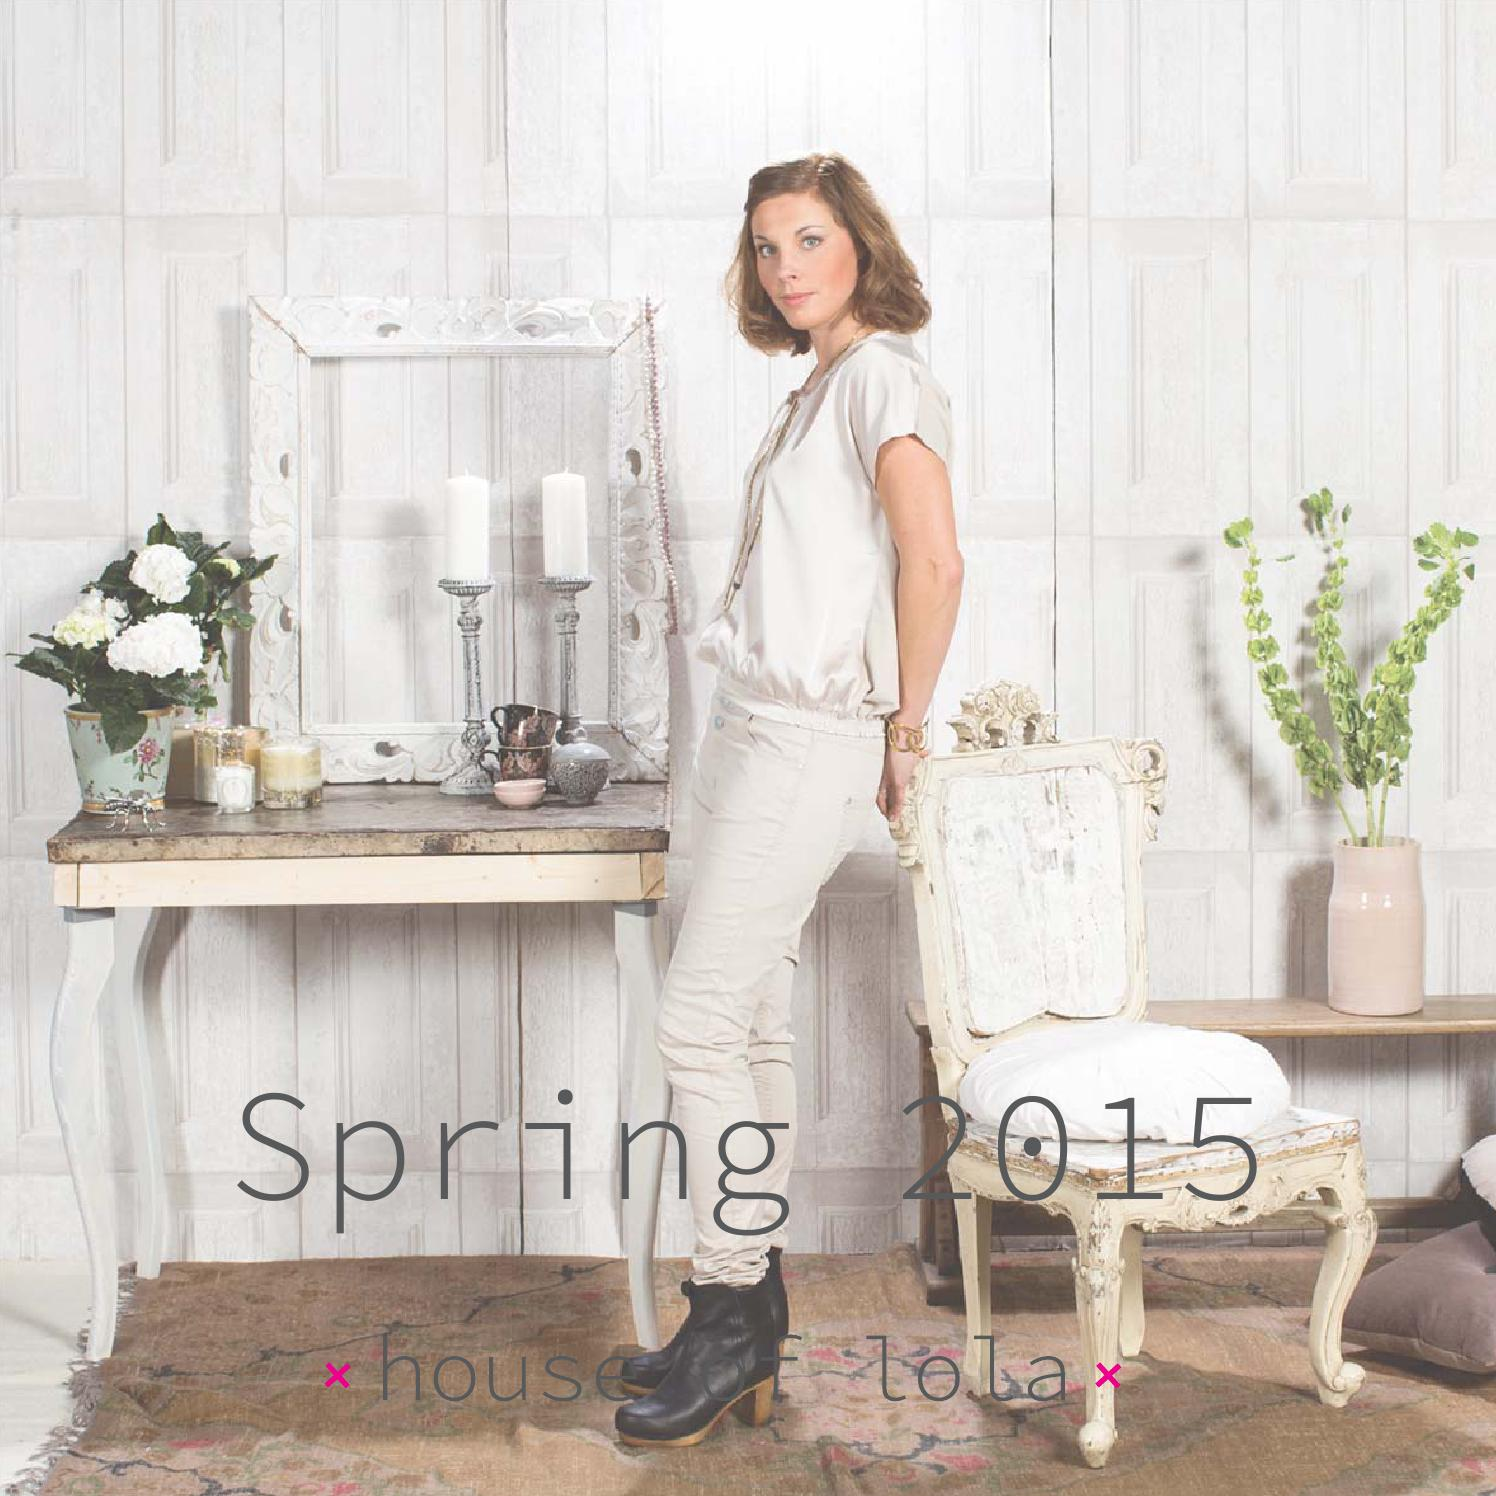 Look Book Spring 2015 by house of lola - issuu